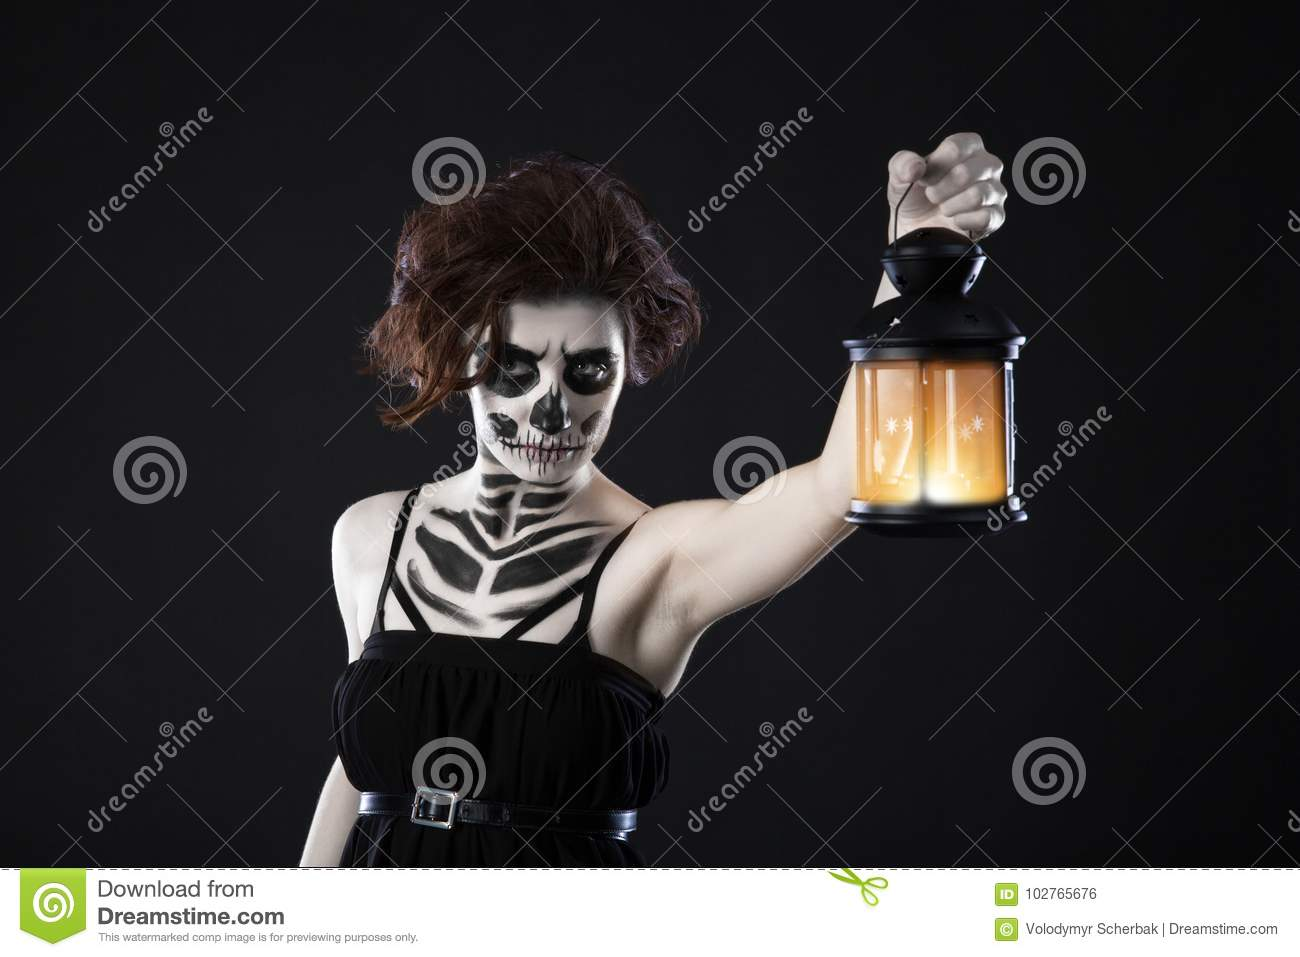 Scary woman with lantern over black background - Spooky image of a scary woman with dark eyes and appearance of a witch, in a whit